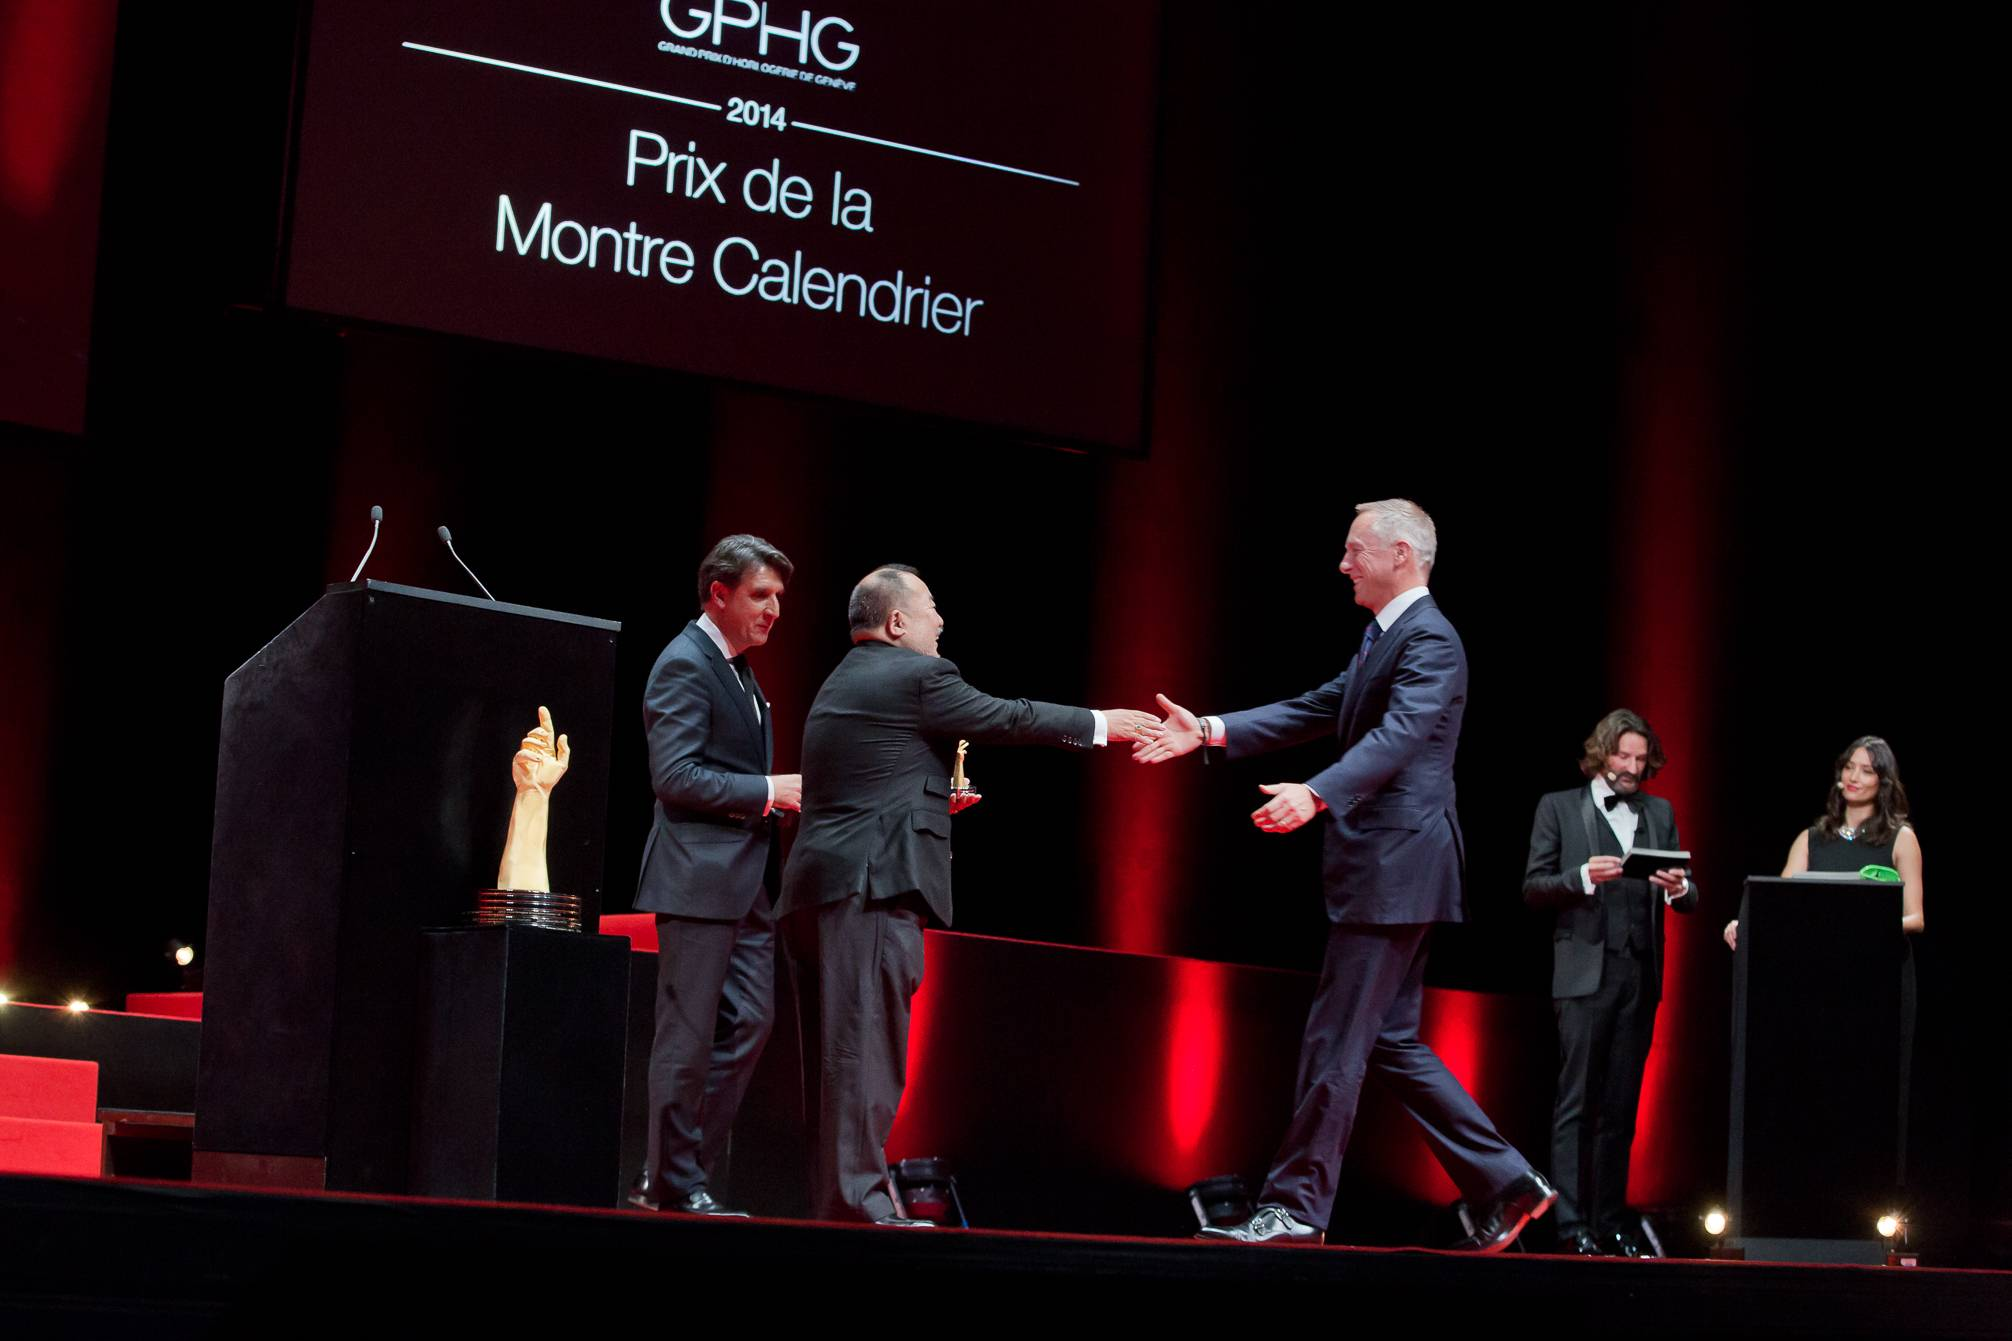 Carlos Alonso and Takeshi Matsuyama (jury members), Wilhelm Schmid (CEO of A. Lange & Söhne, winner of the Calendar Watch Prize 2014)